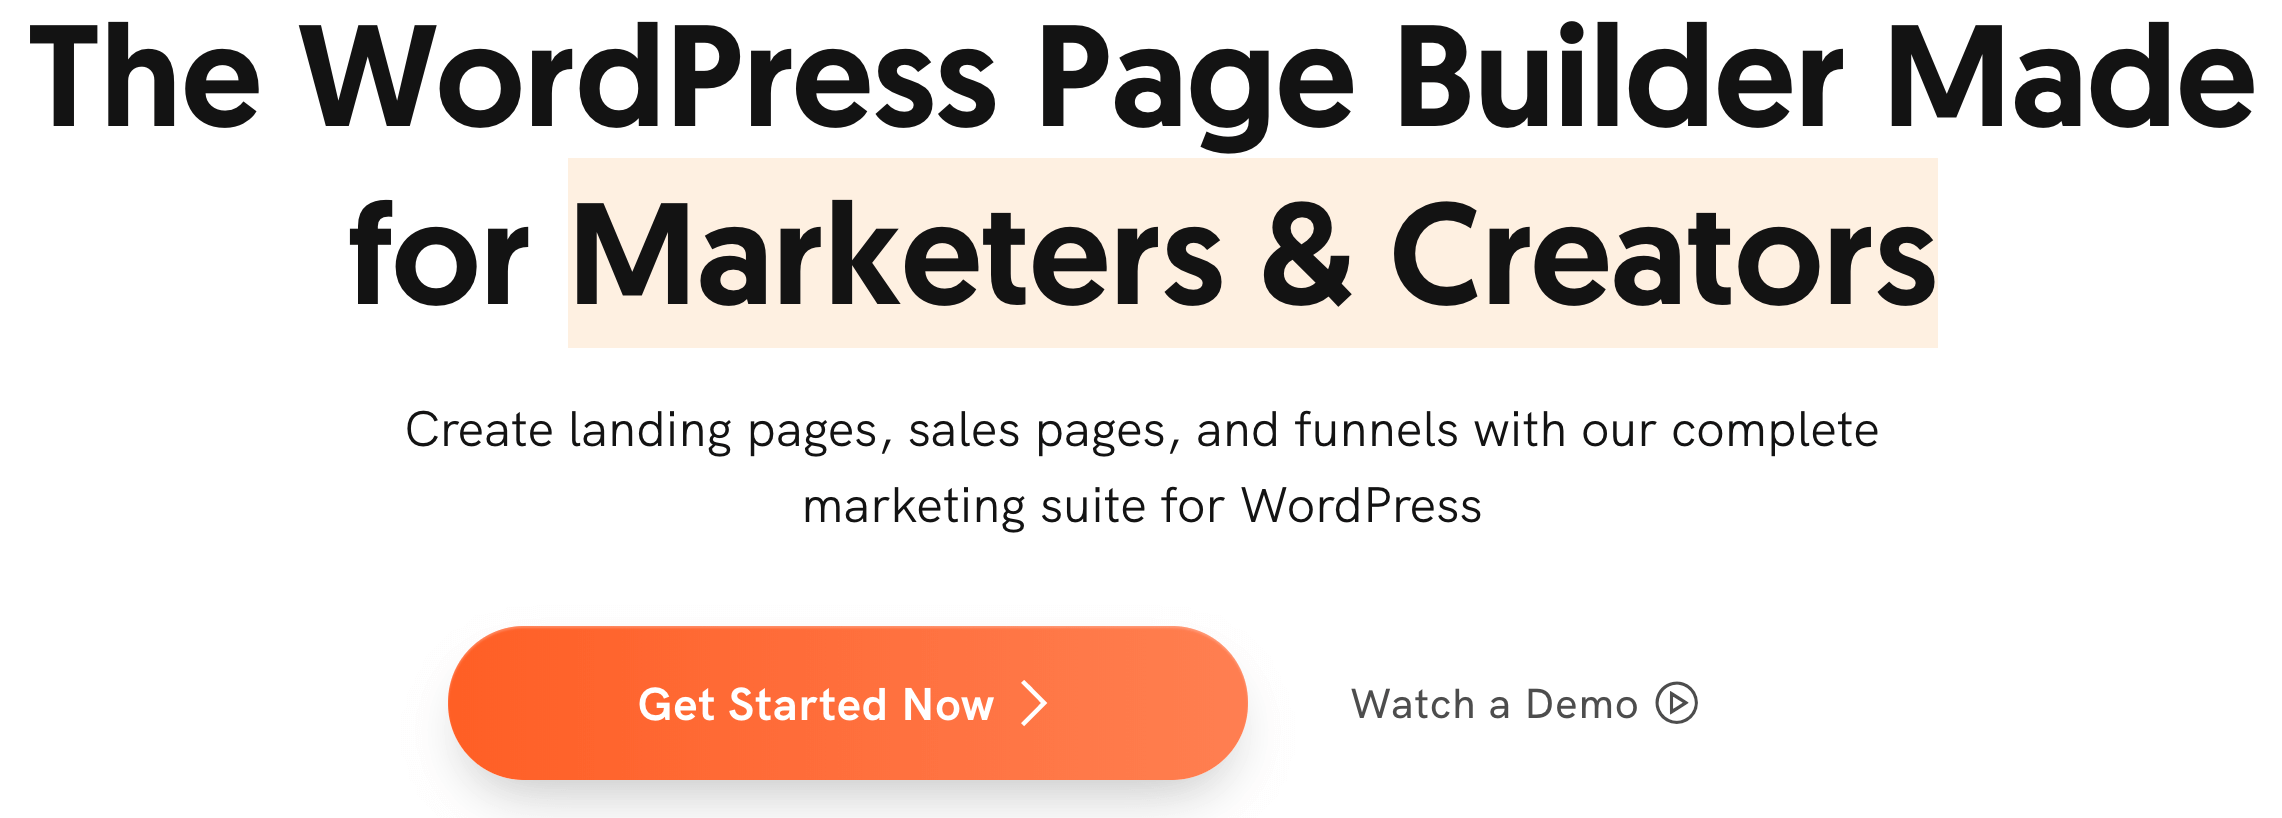 How To Duplicate A Page In WordPress using the OptimizePress Lead Generation Plugin